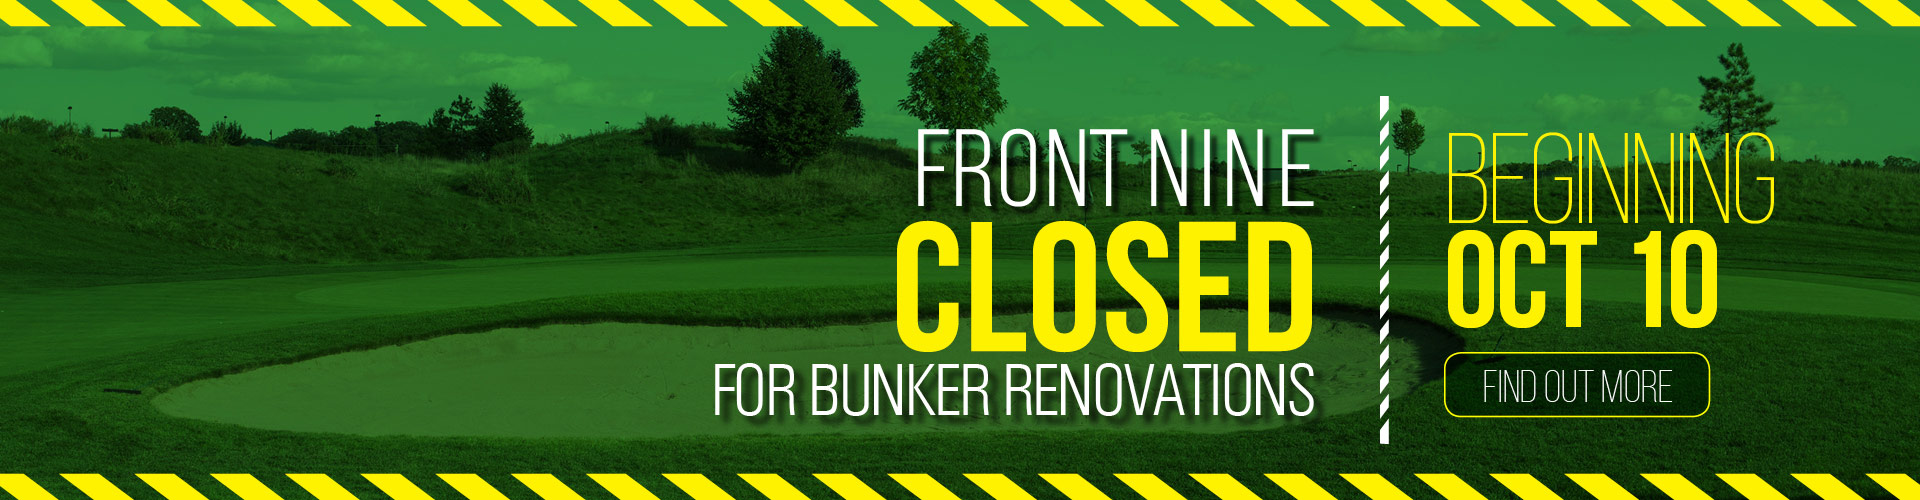 Oct 10 Front Nine Closed for Bunker Renovations